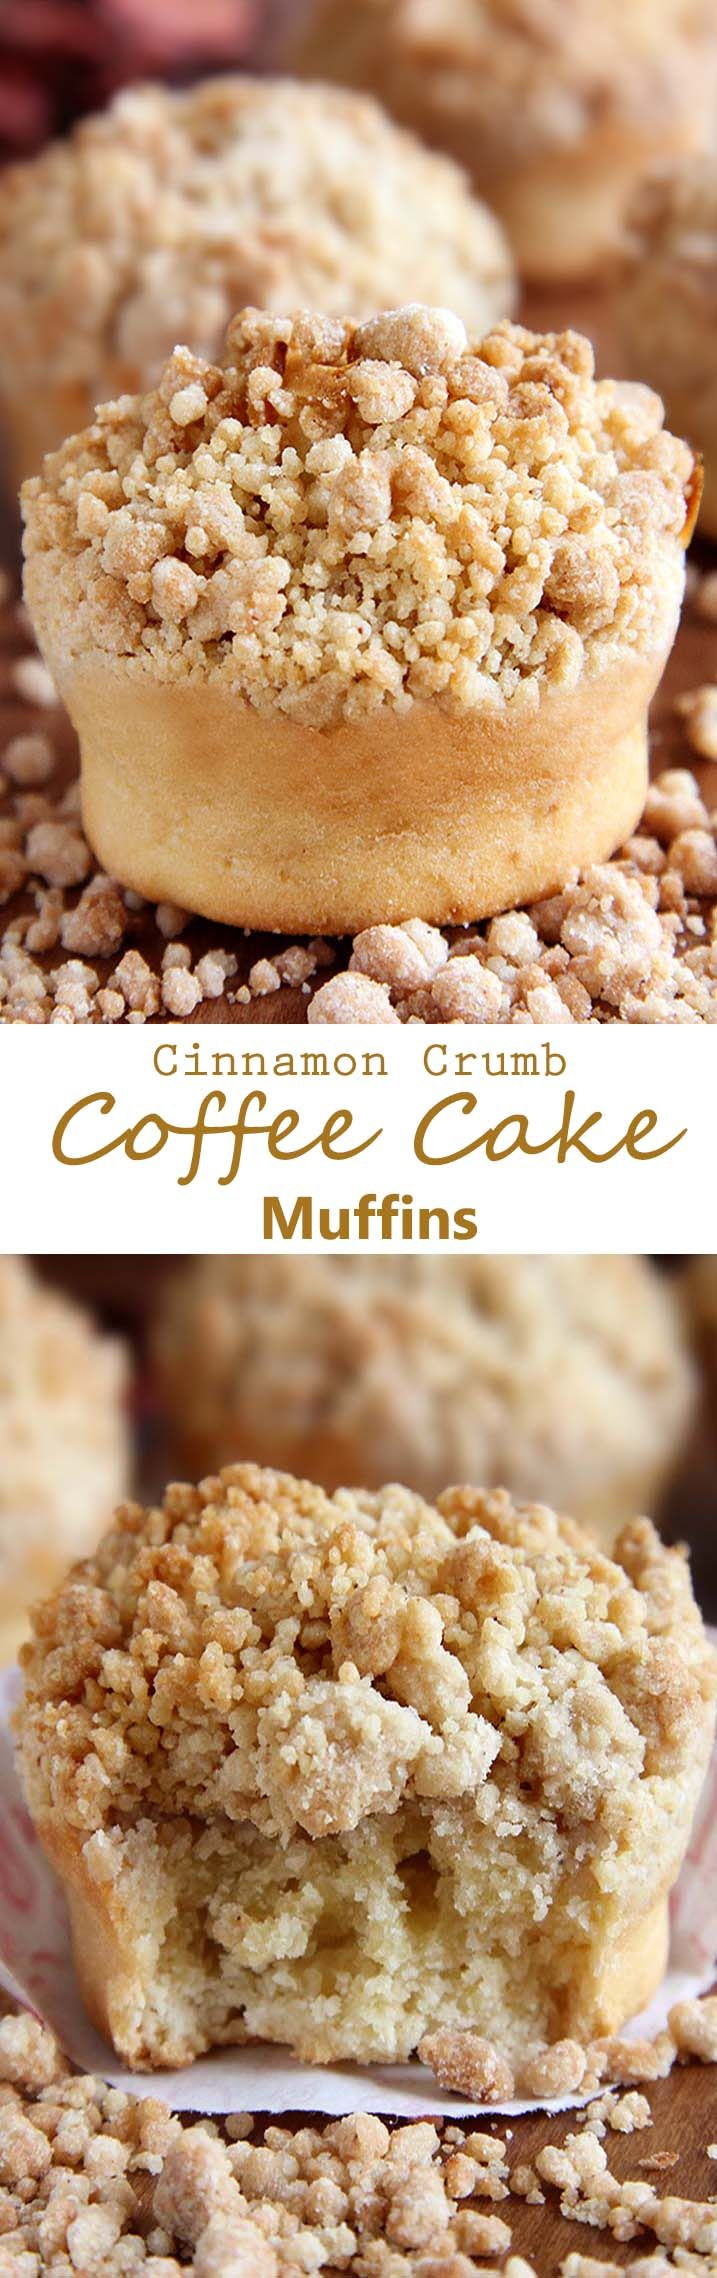 Cinnamon Crumb Coffe Cake Muffins - Gather your ingredients. It's a very humble coffee cake. Crumb topping is the star! It doesn't take much to highlight it. | sugarapron.com